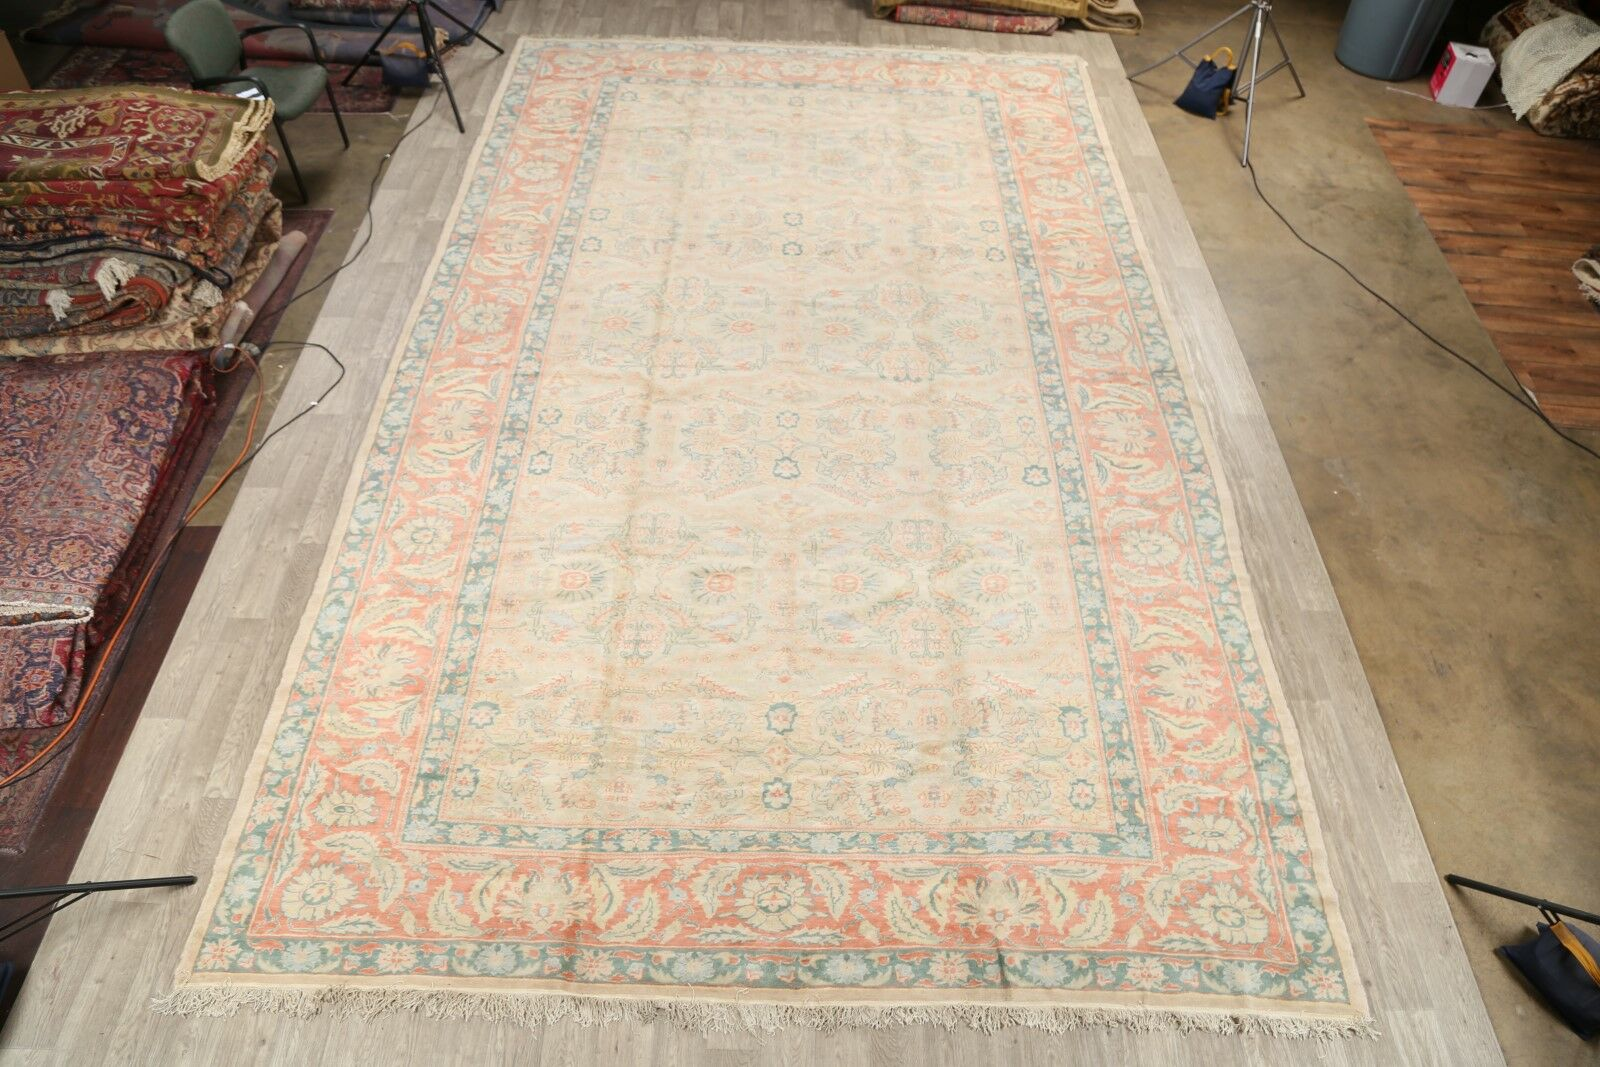 Eragny Oushak Oriental Egypt Hand-Knotted Wool Beige/Red Area Rug